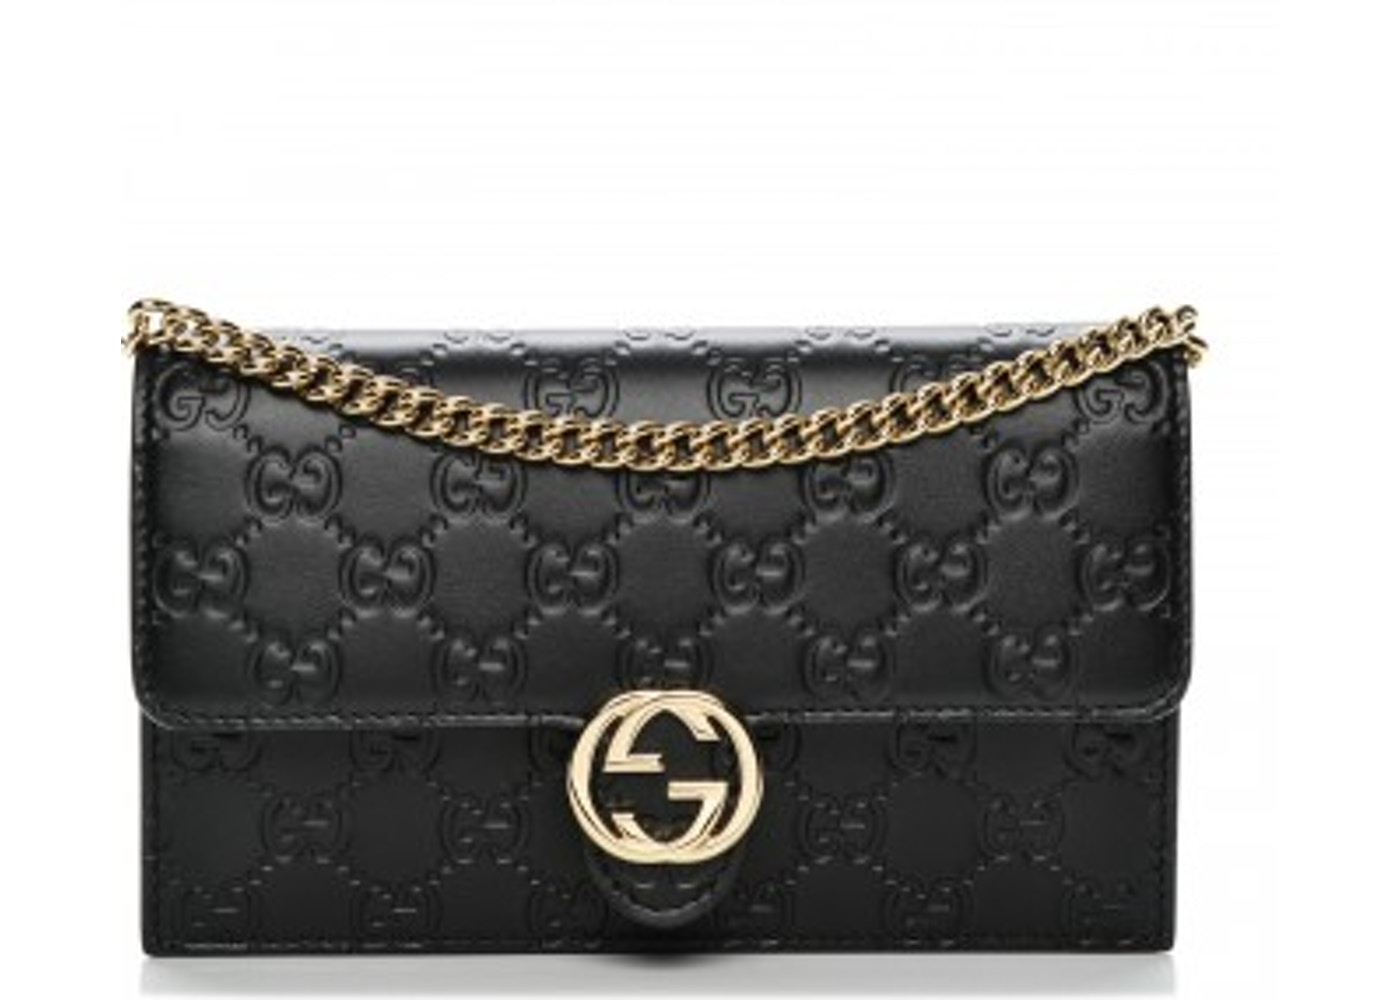 5e004e8f720 Gucci Interlocking Chain Wallet Crossbody GG Interlocking GG Black. GG  Interlocking GG Black